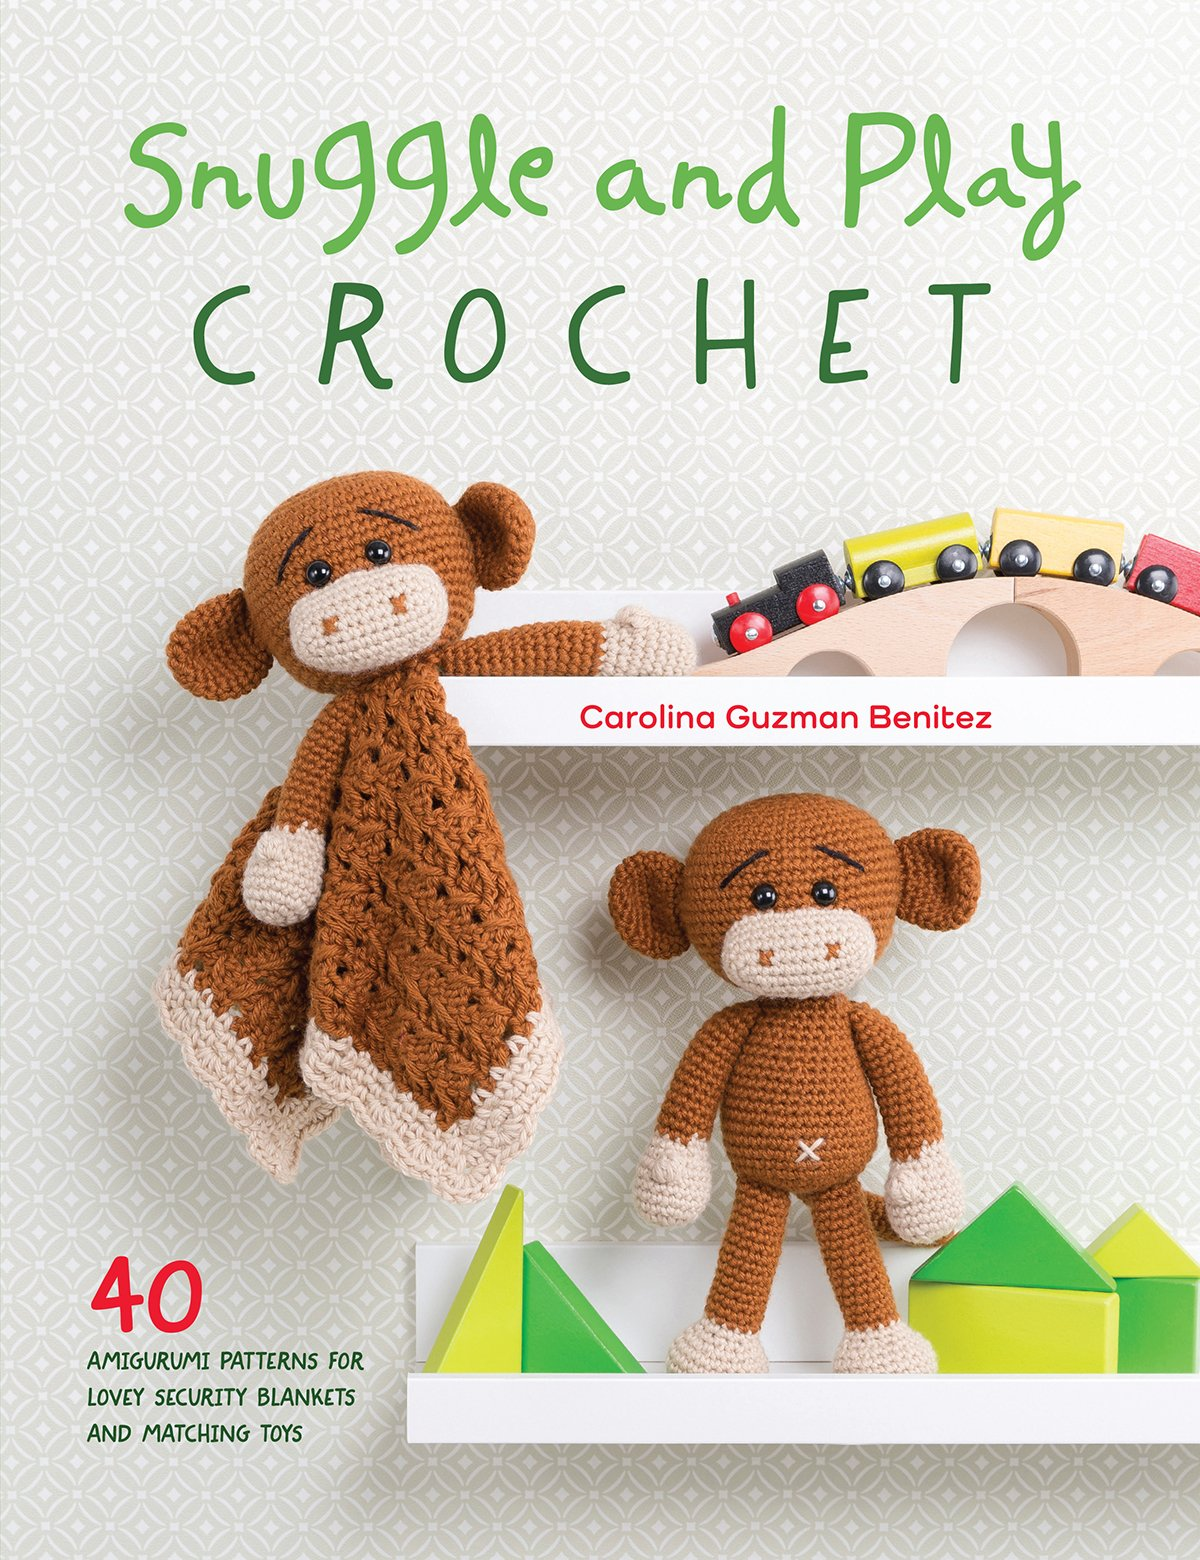 Snuggle And Play Crochet 40 Amigurumi Patterns For Lovey Security